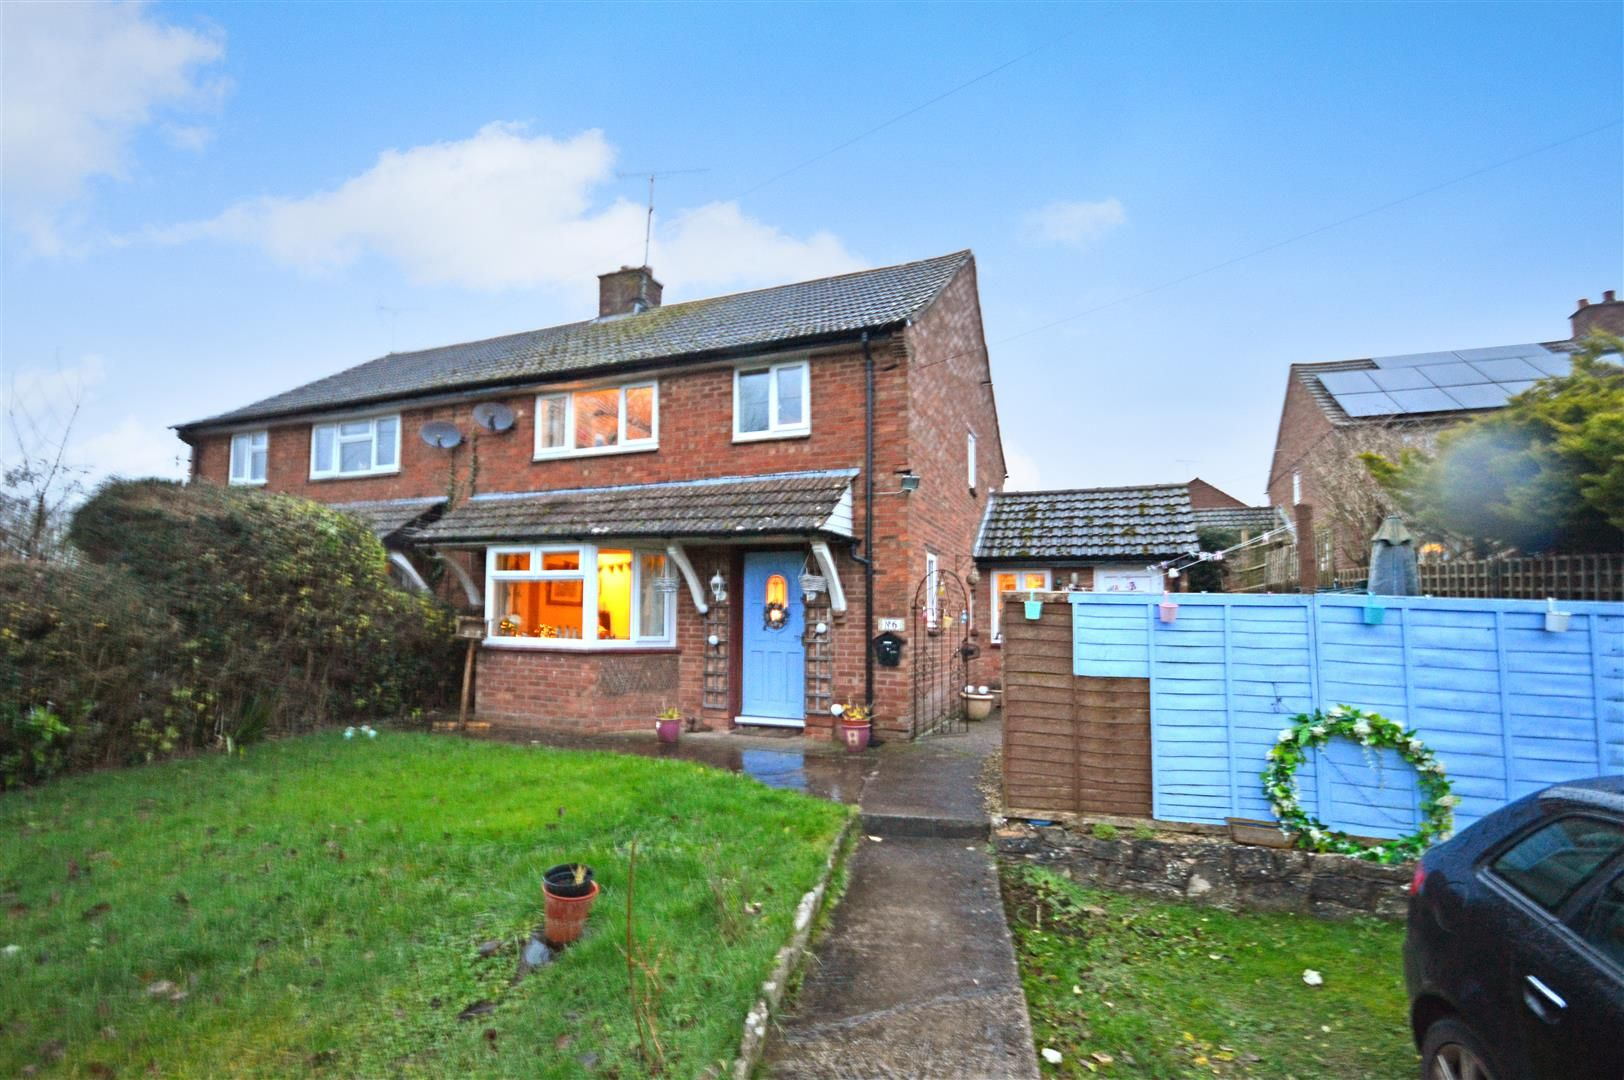 3 bed semi-detached for sale in Much Birch  - Property Image 1